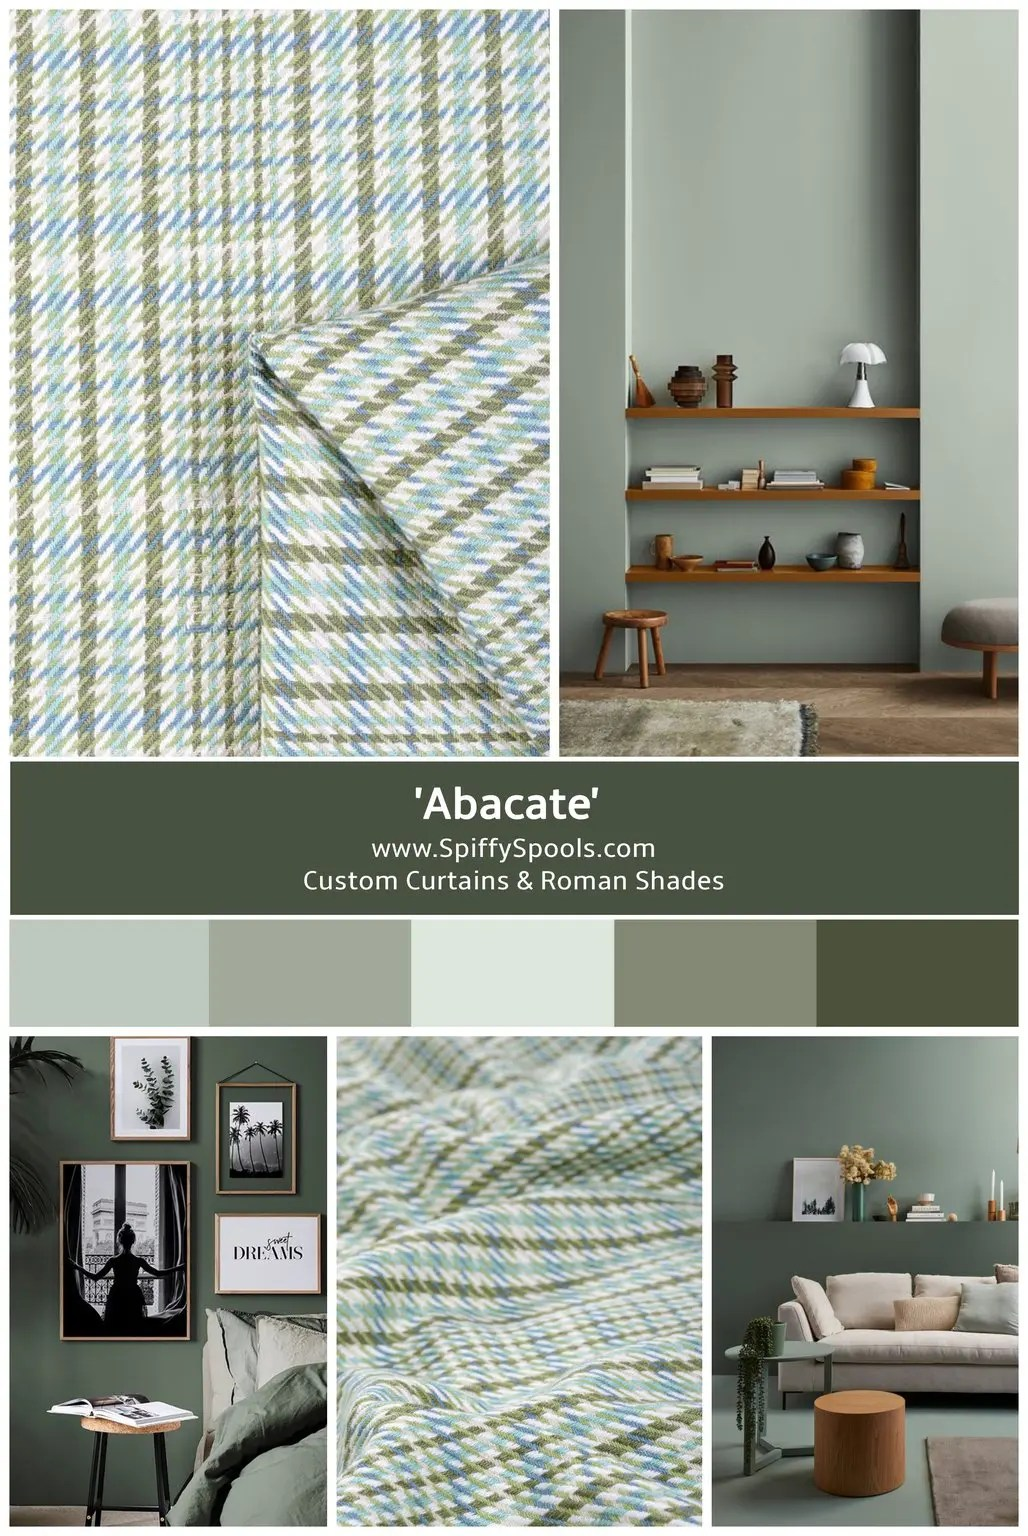 MONDAY MOOD: INSPIRED BY 'ABACATE'